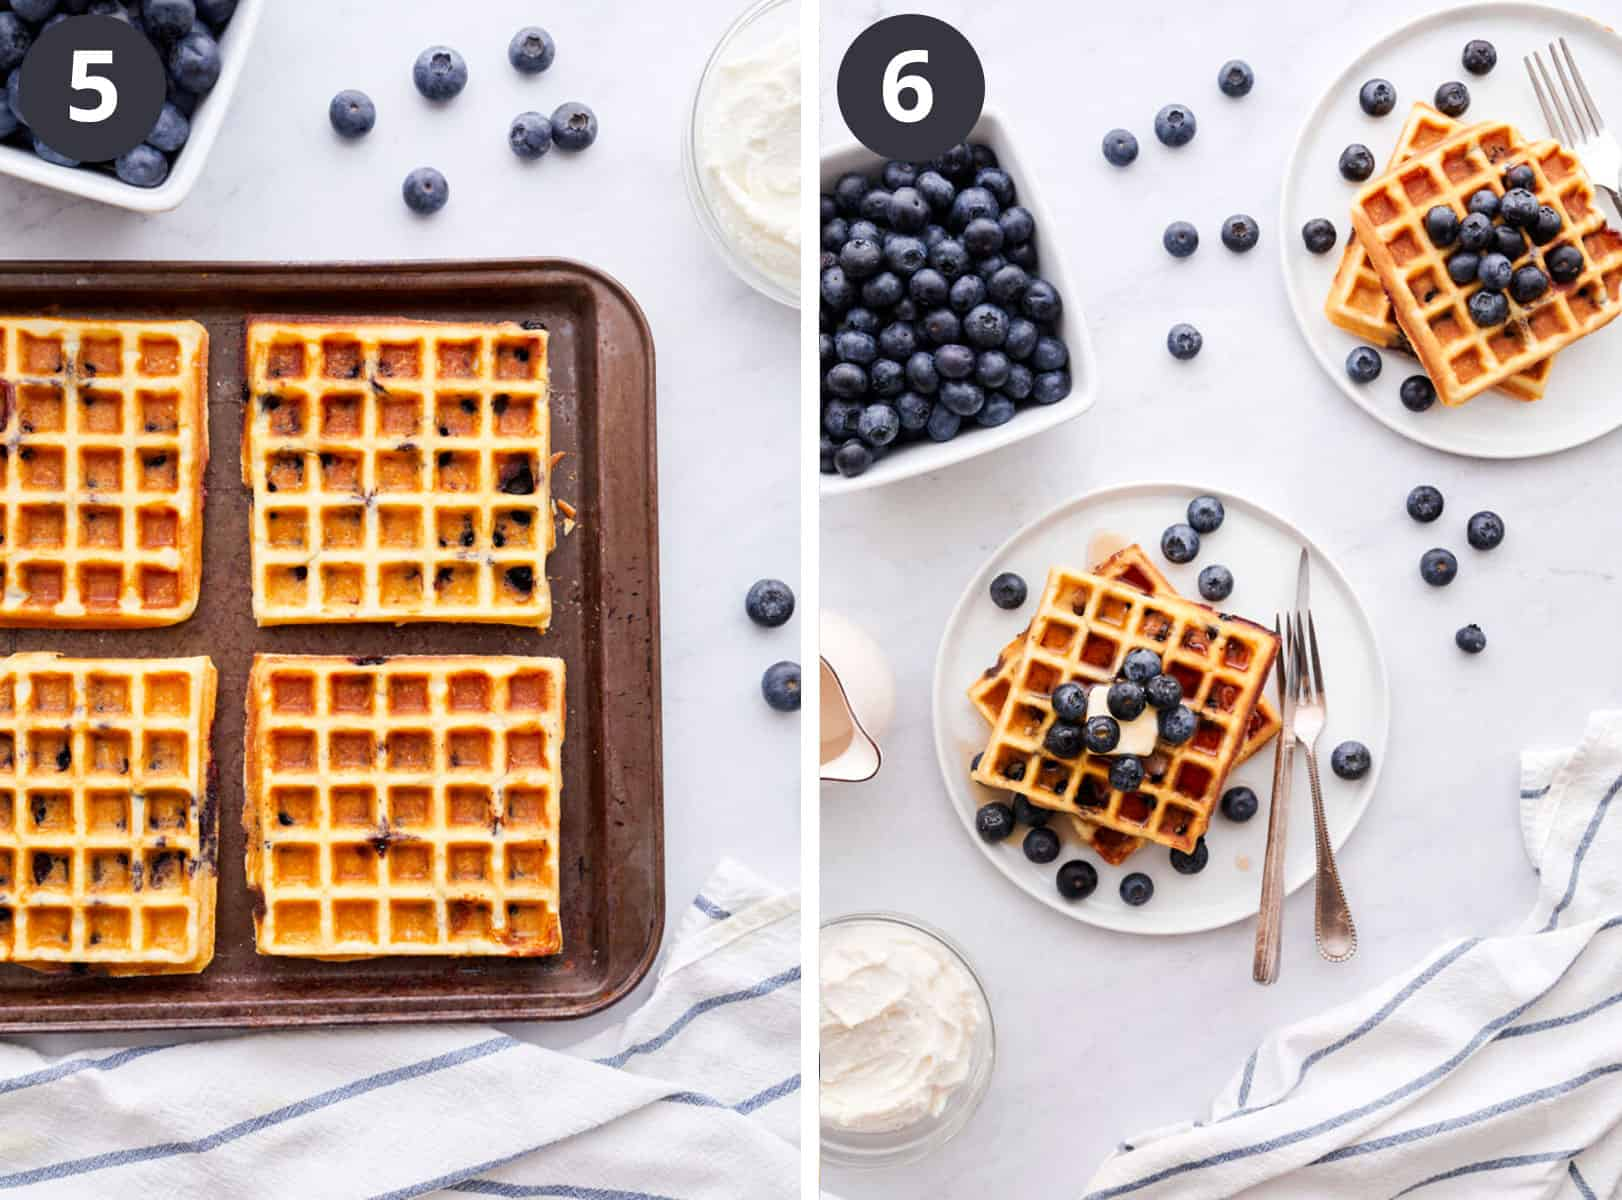 The fifth and the sixth cooking steps of making the waffles